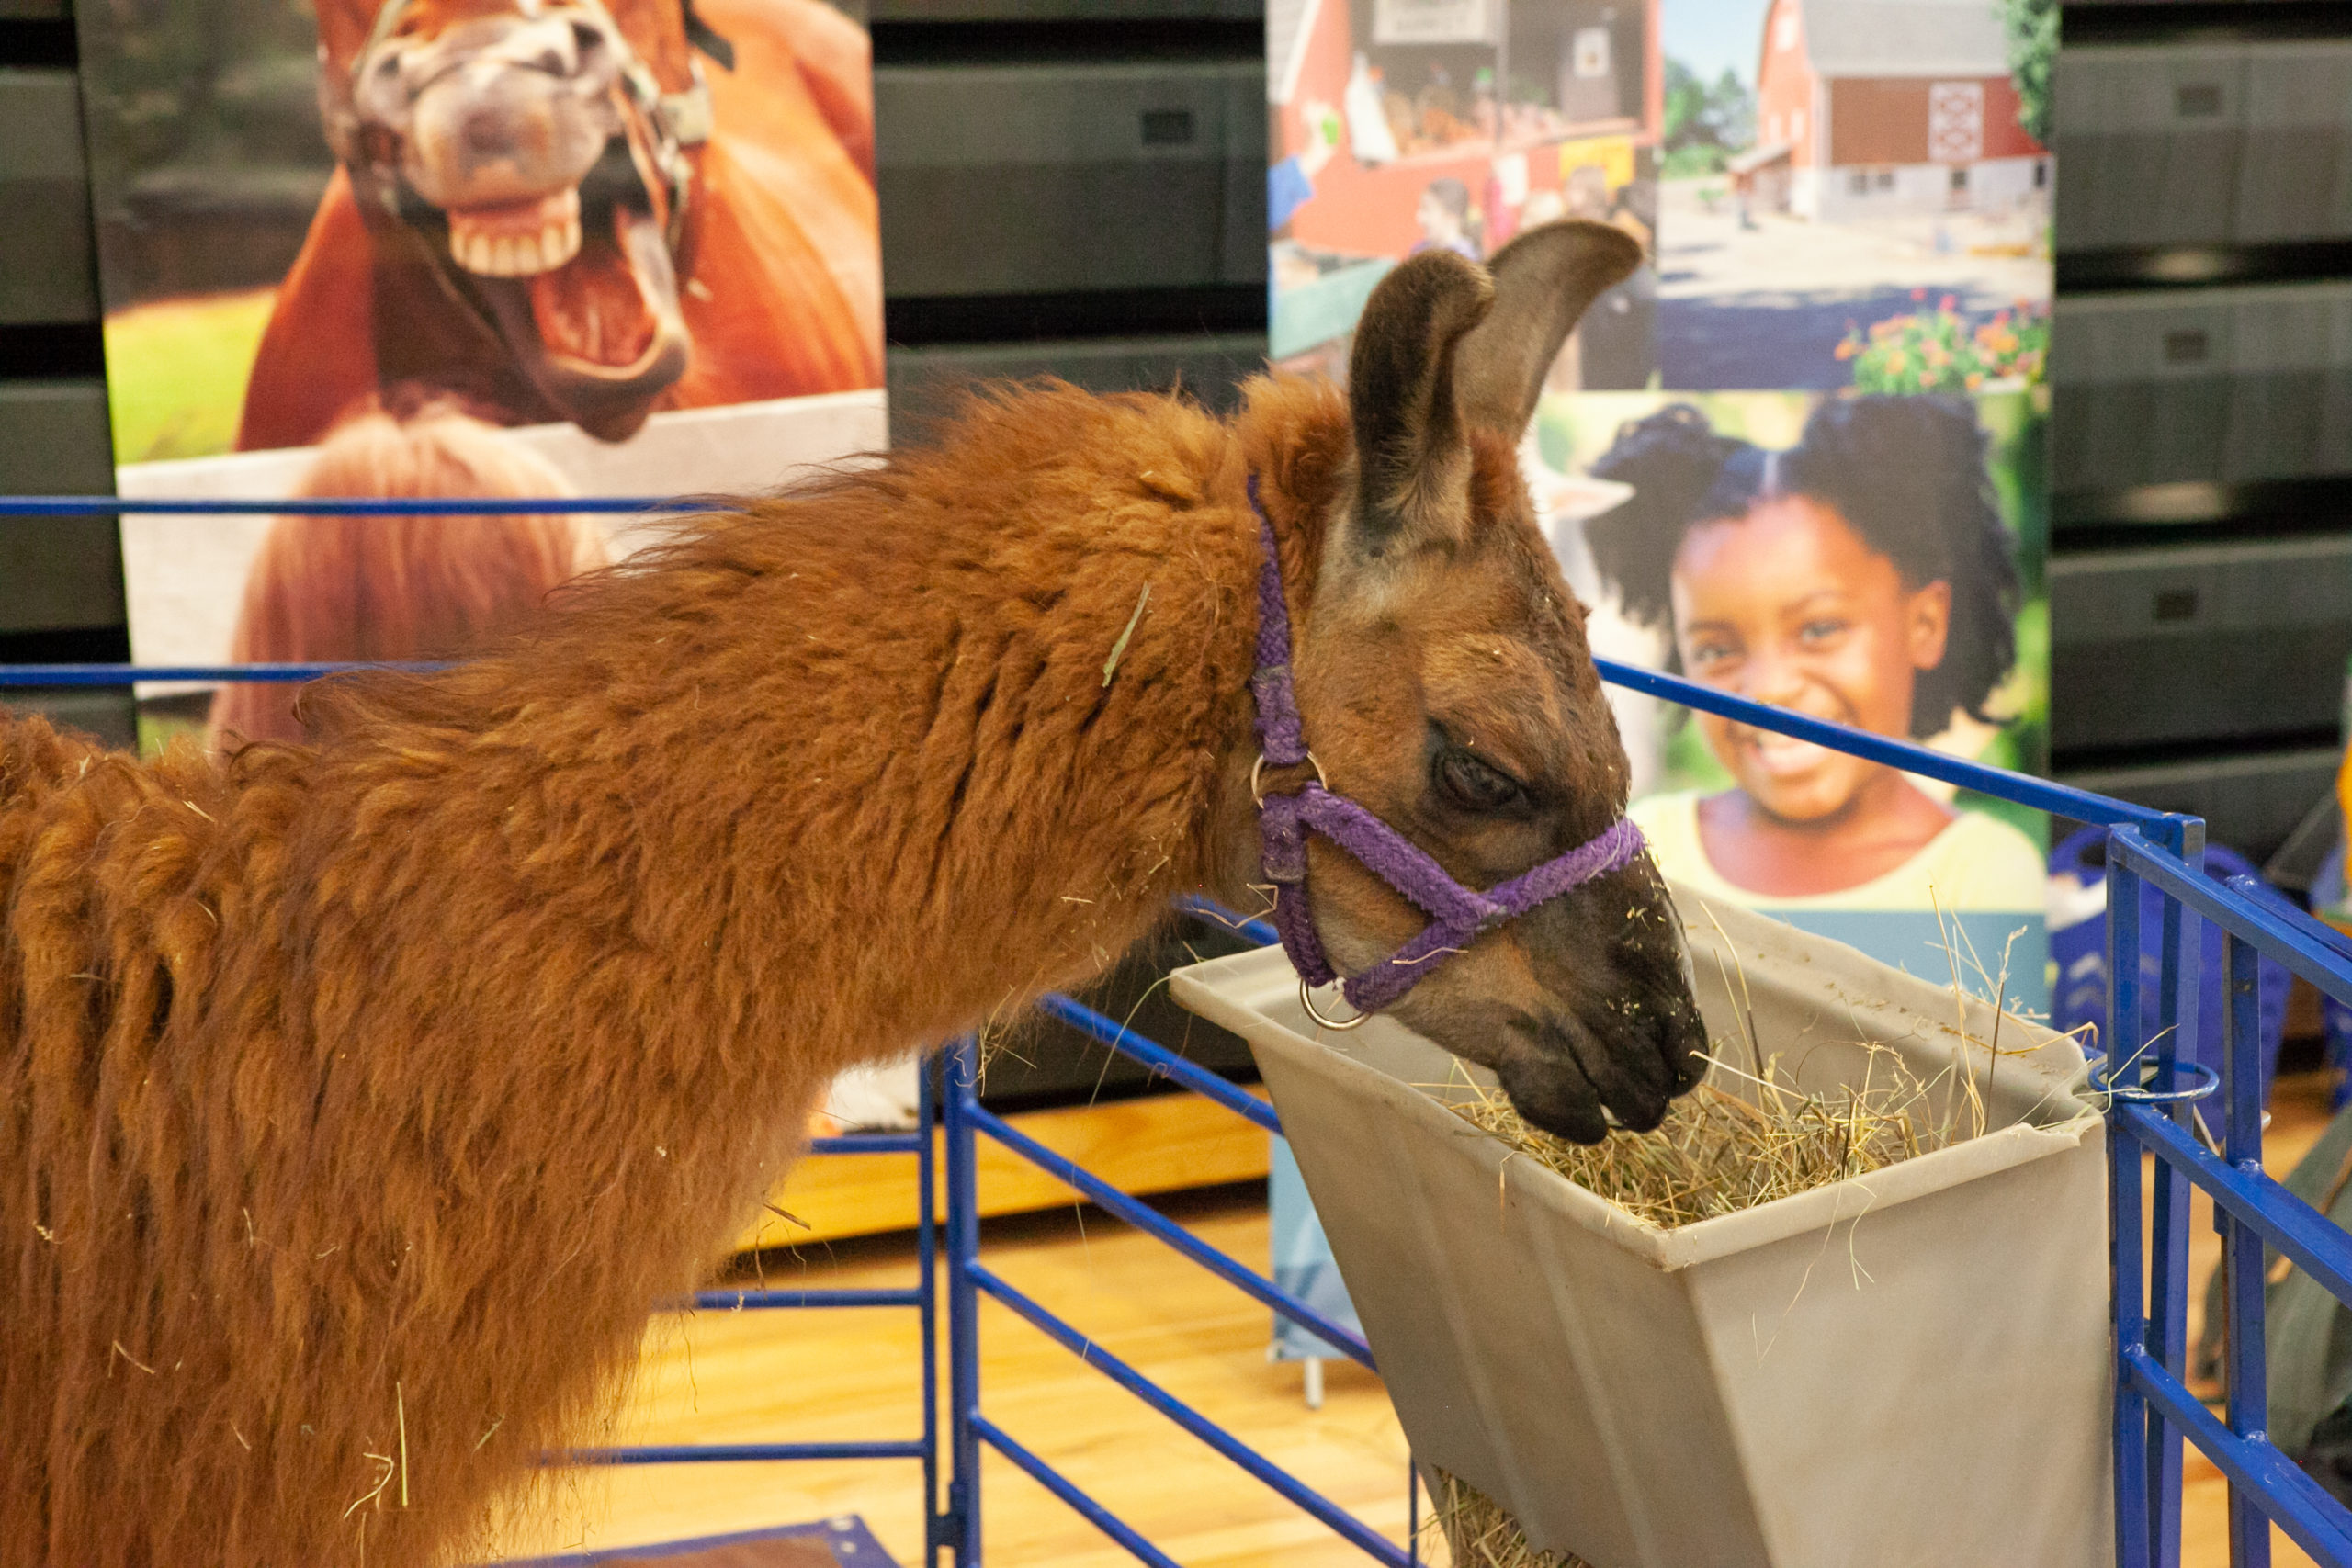 Llama eating hay at Camp Expo with images in background